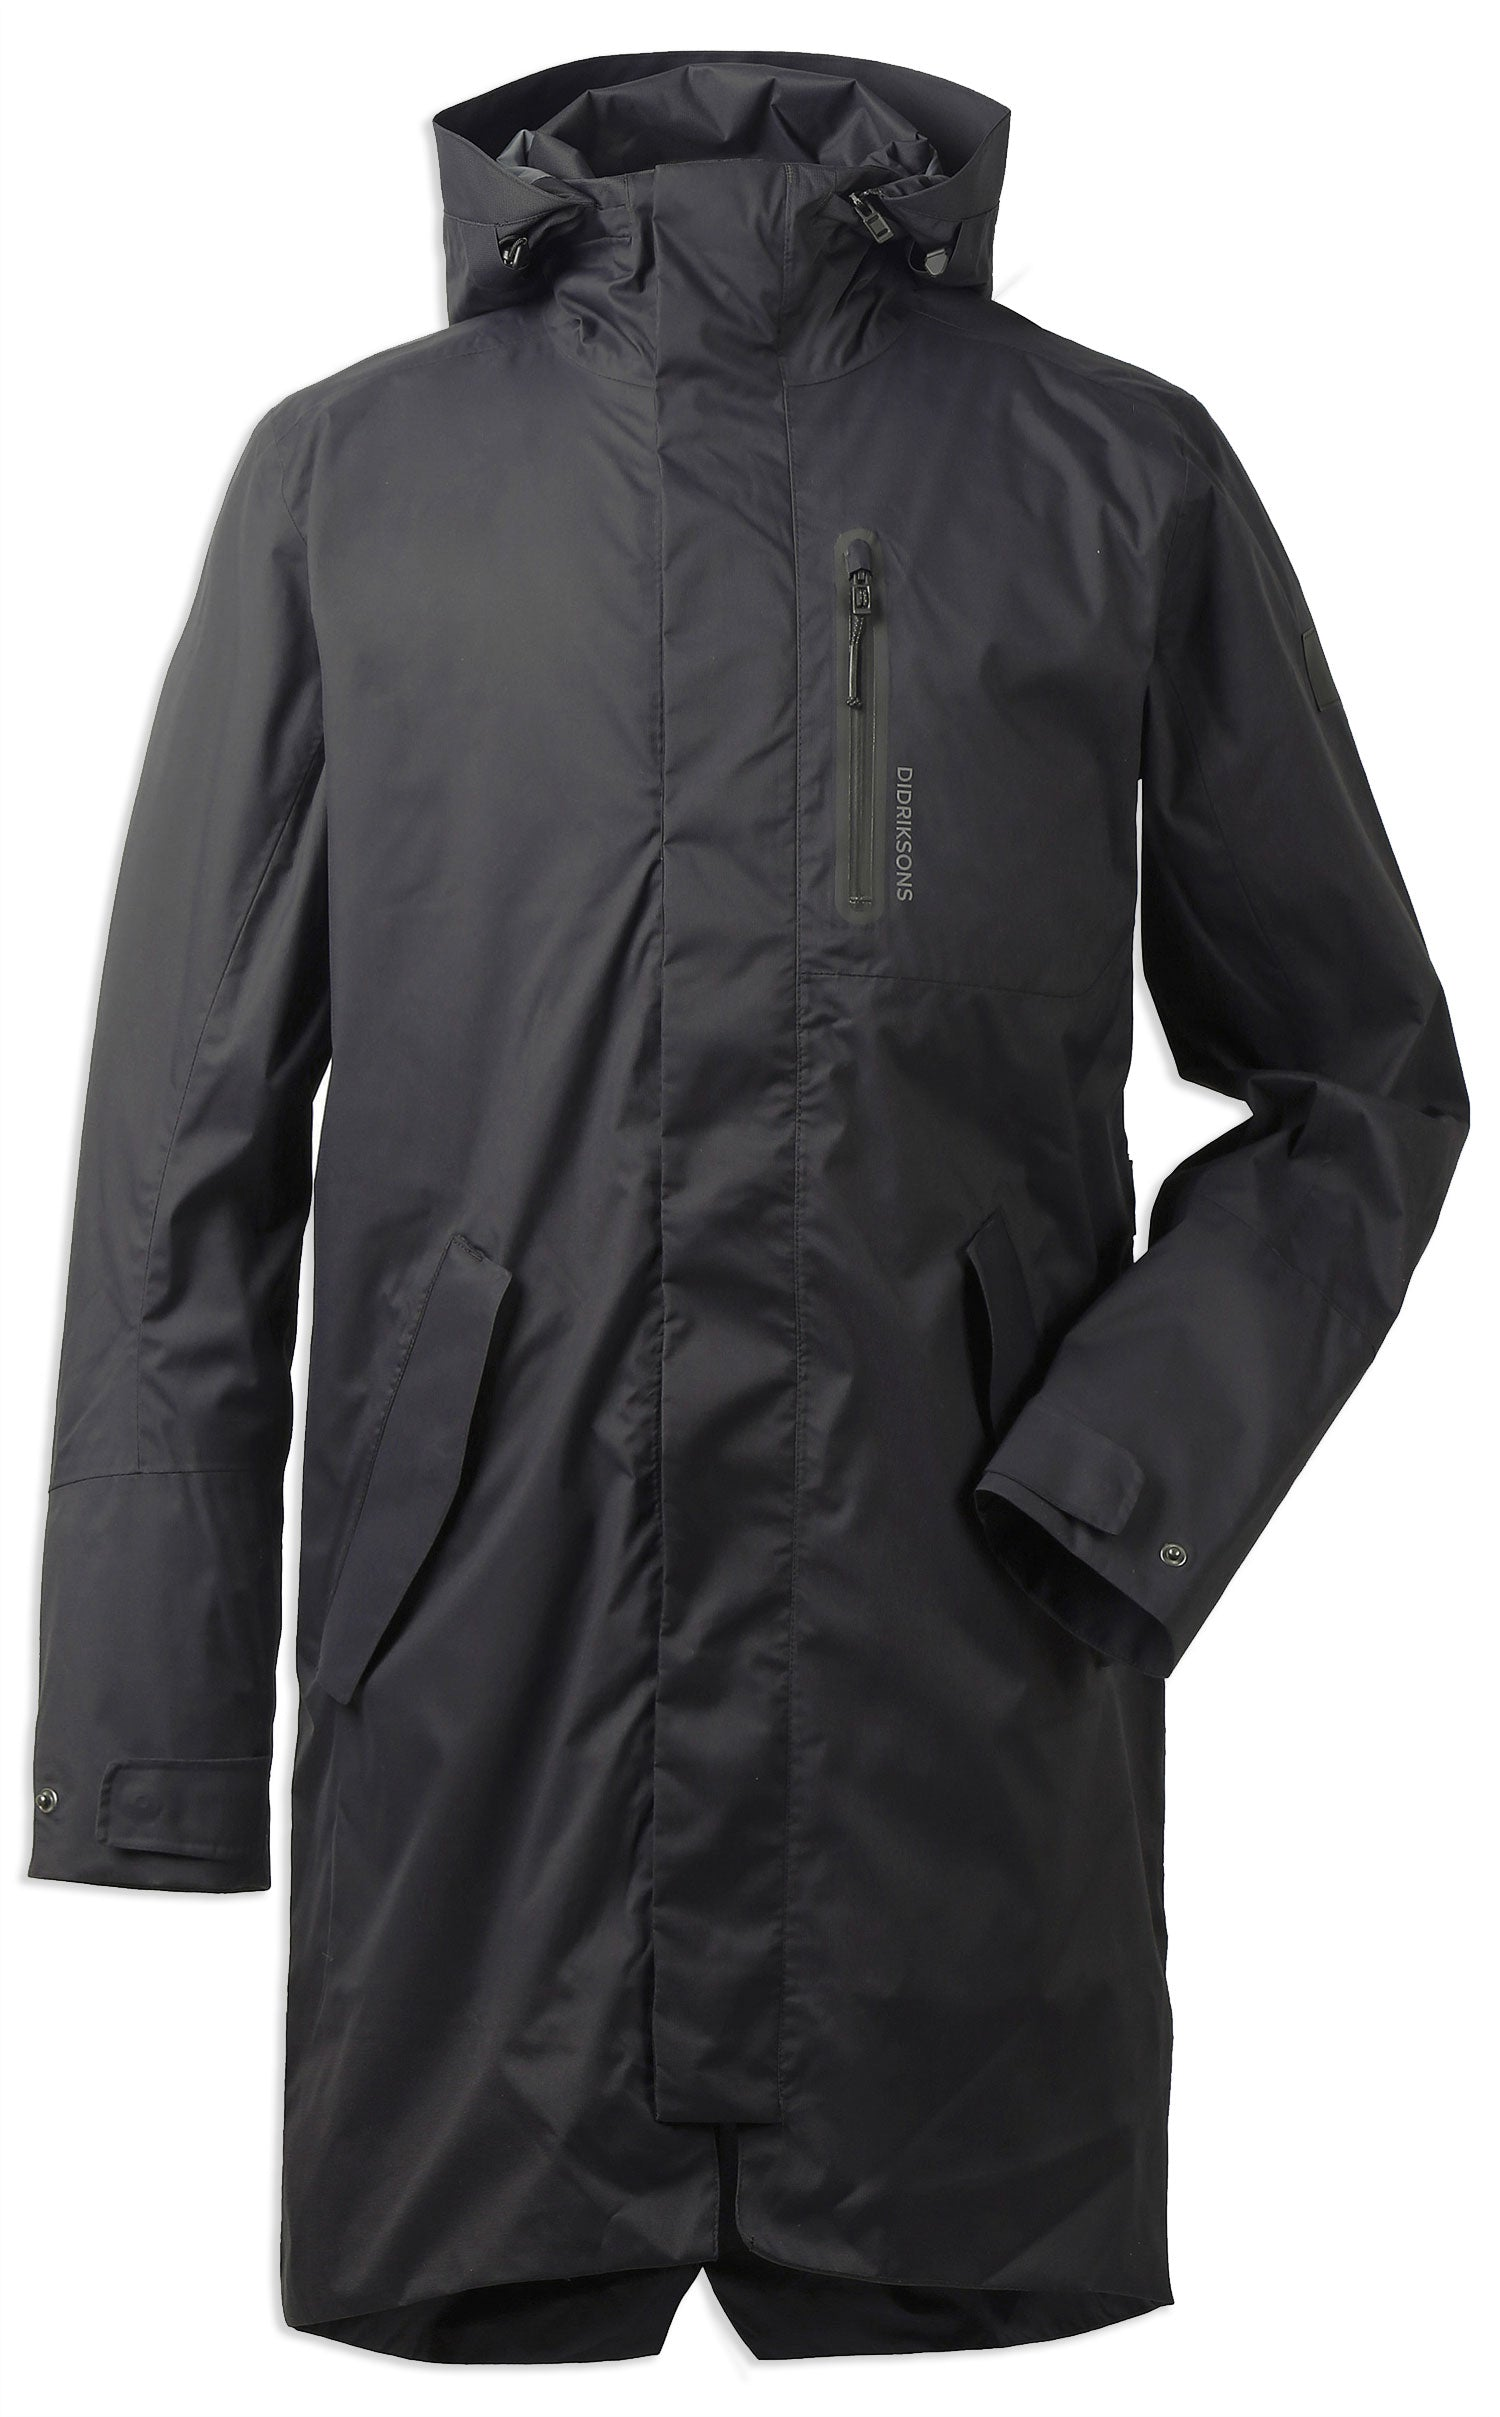 Black Men's Arnold Waterproof Parka Coat by Didriksons